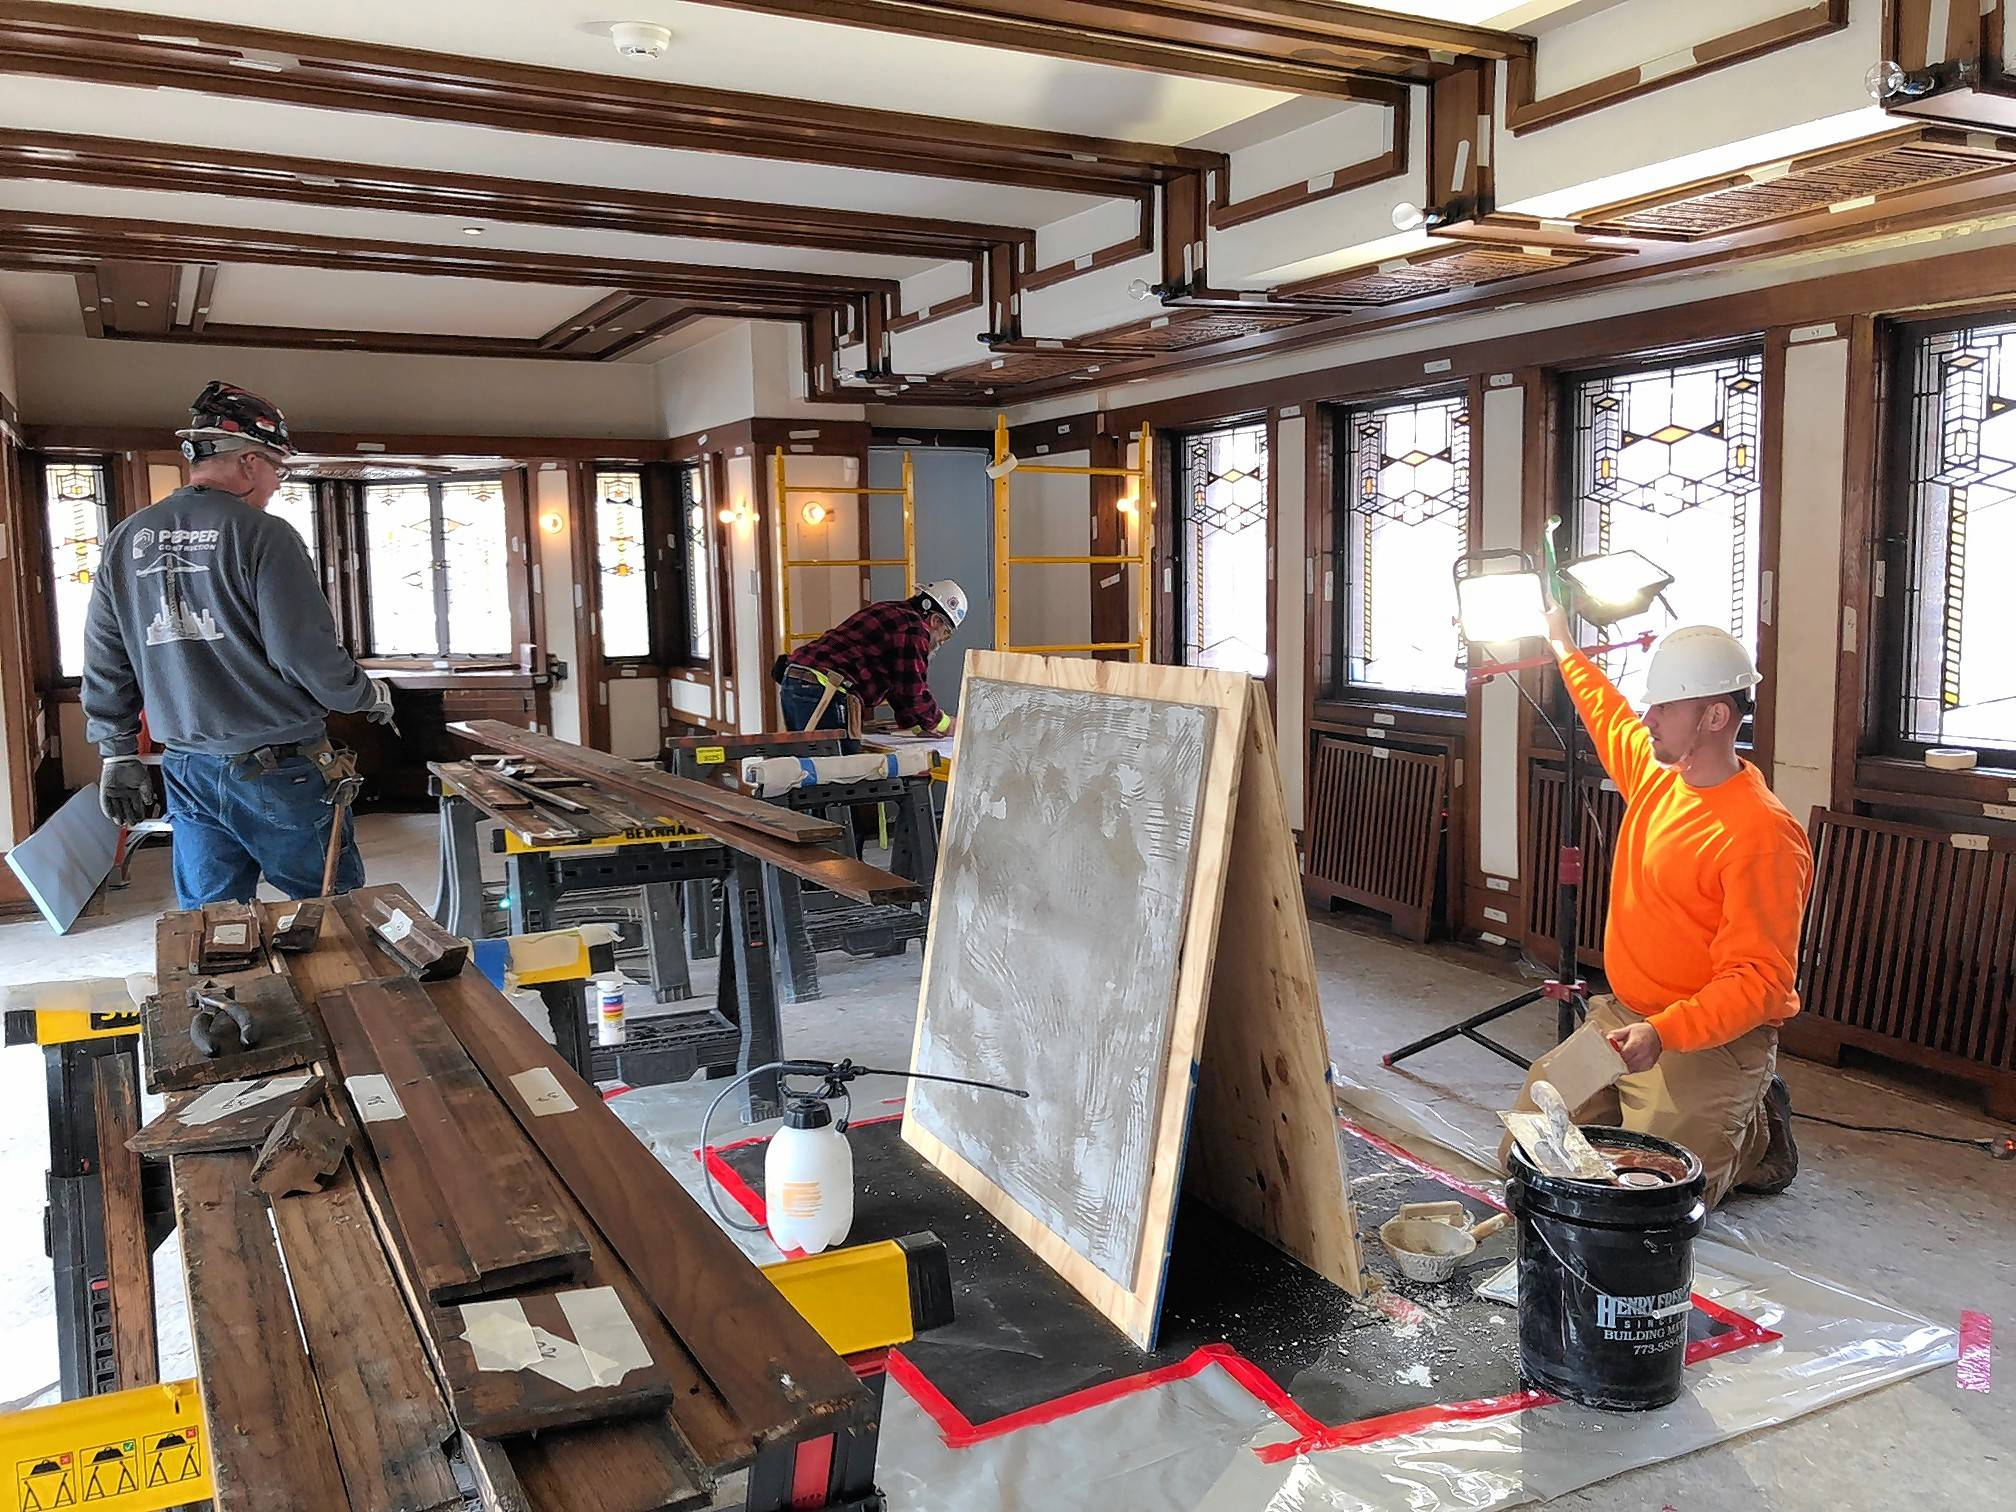 Robie House has three different lime putty plaster finishes. Here, workers prepare several of 24 sample lime putty panels that were produced and evaluated for putty mix, aggregate match, color and original finish match.